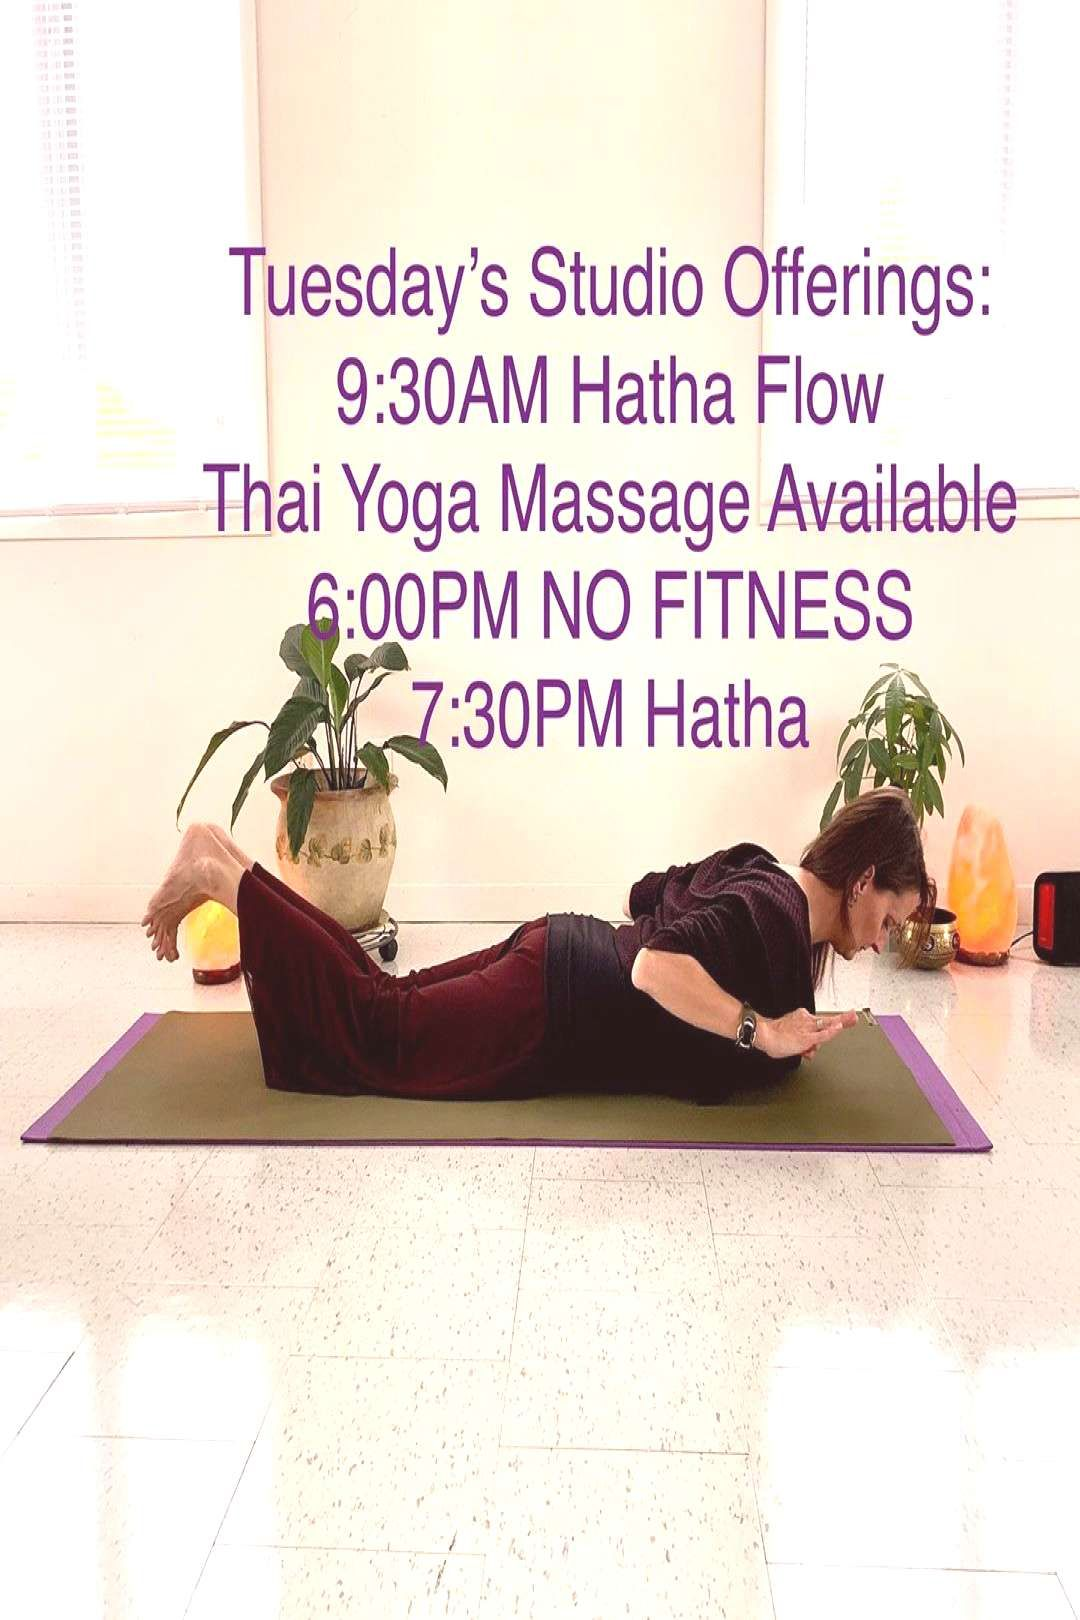 #indoorpossible #mysterious #offerings #available #tuesdays #massage #ability #fitness #people #stud...